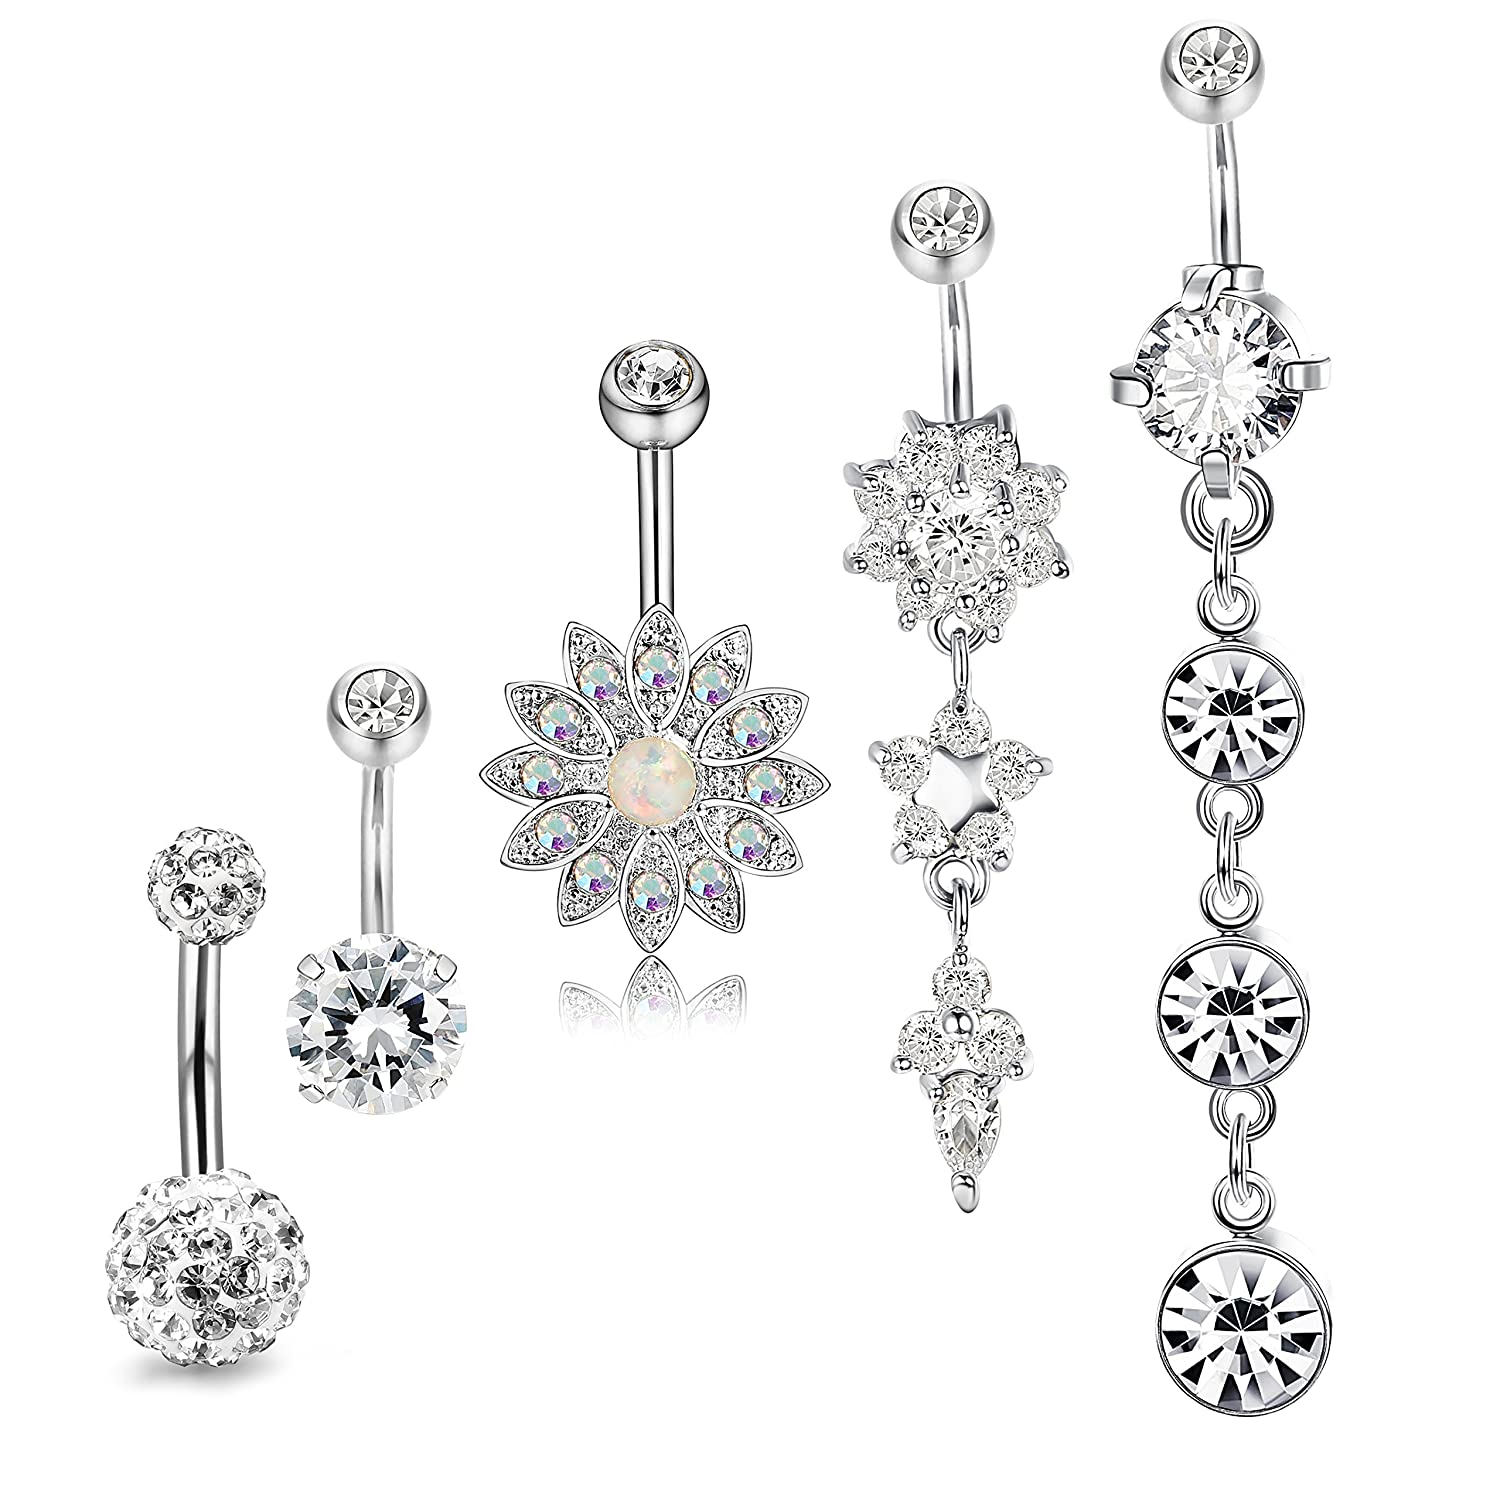 JOERICA 3-6PCS 14G Stainless Steel Belly Button Rings Navel Body Jewelry Belly Piercing CZ Inlaid PD-6PSZ